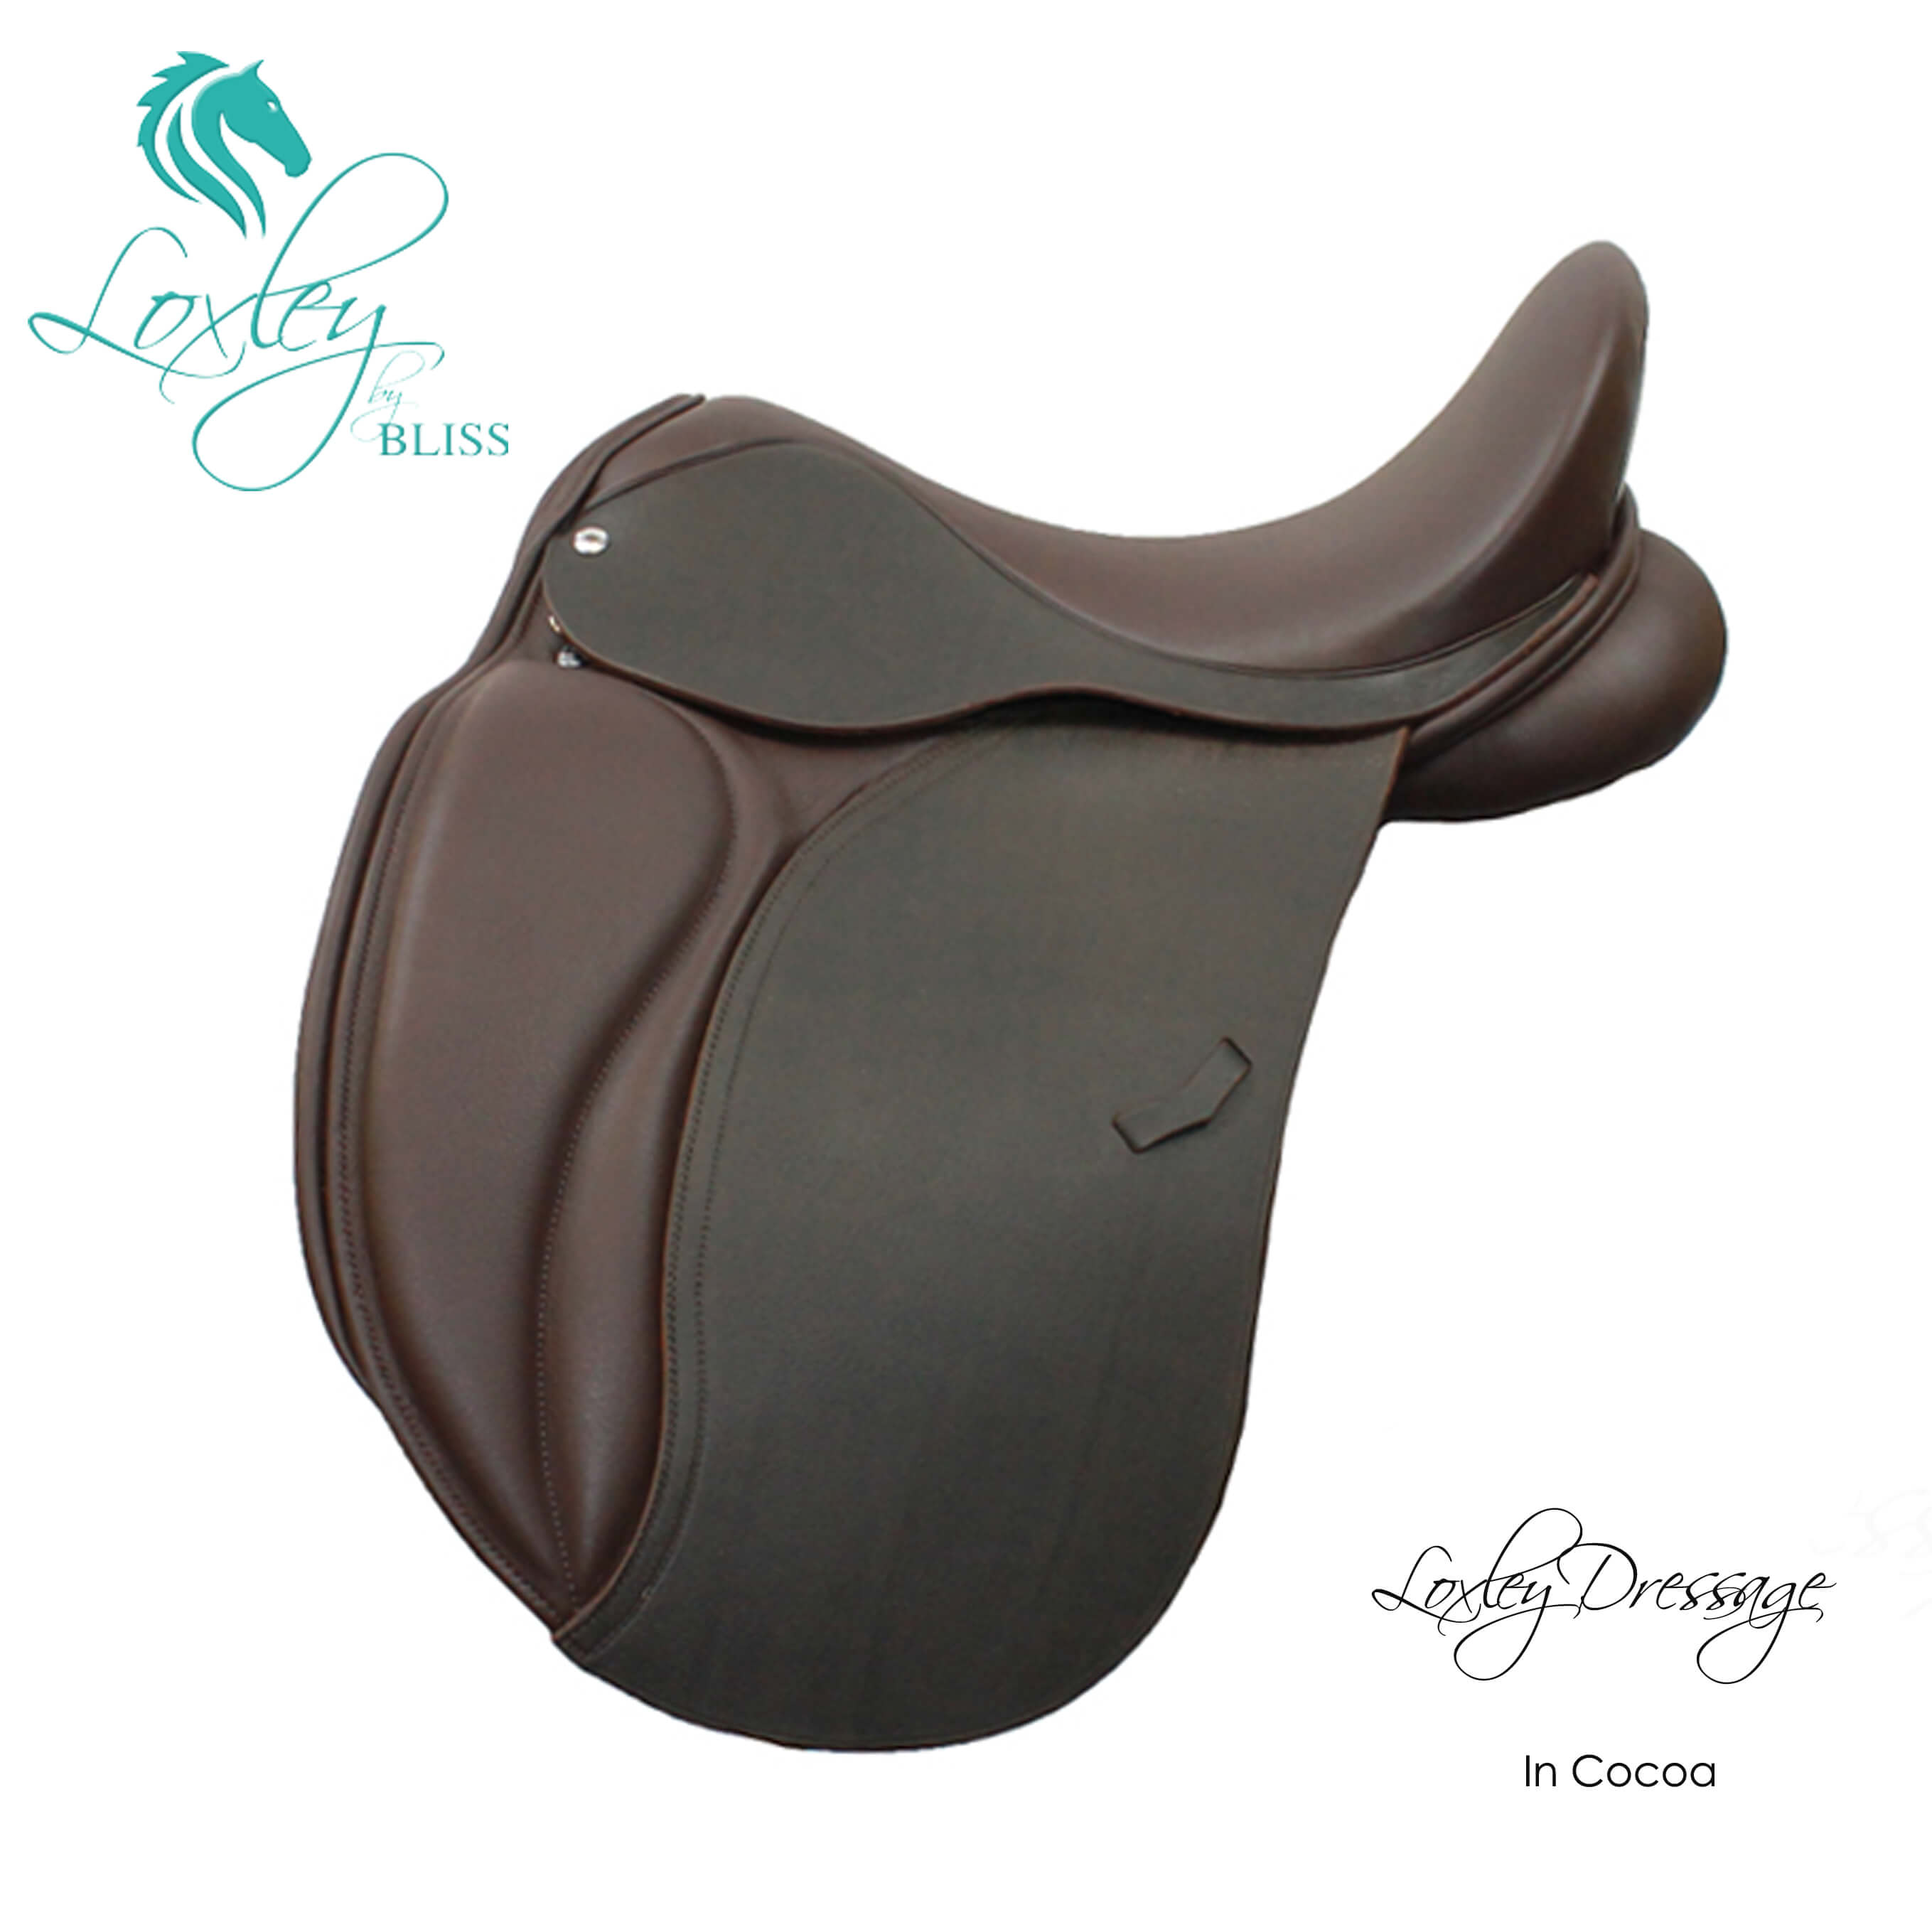 1AA Loxley Dressage cocoa